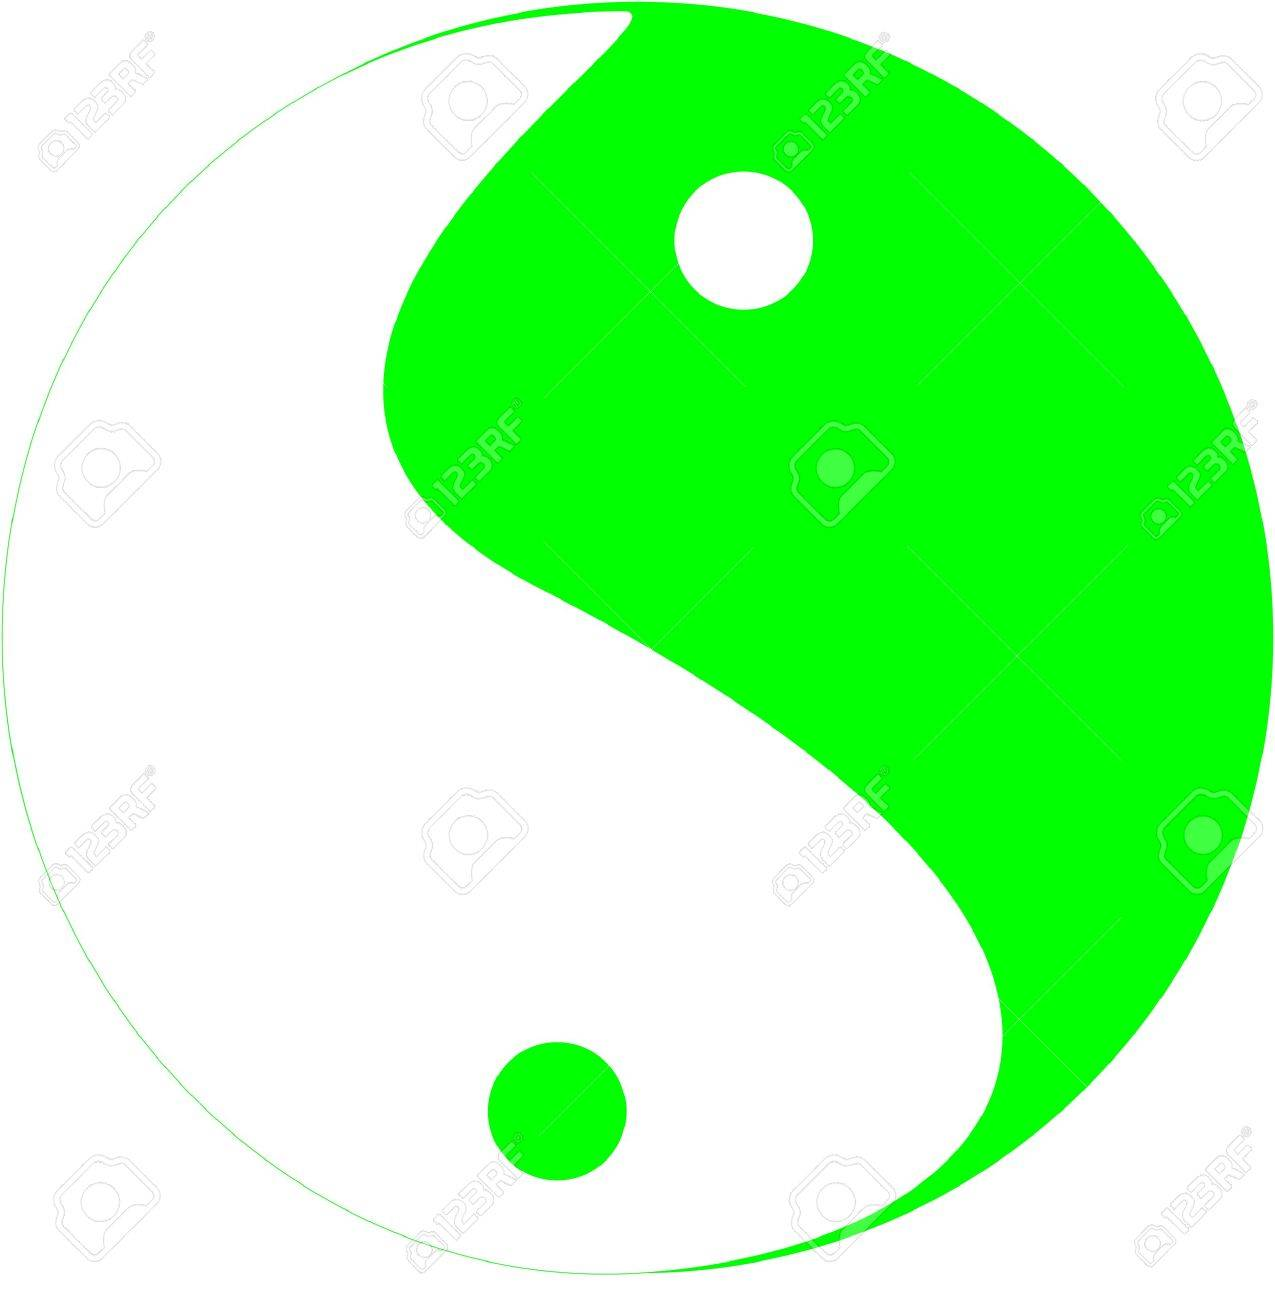 Tai Chi symbol in colors of green and white, showing the movement of yin and yang fluid motion. Stock Photo - 4240570